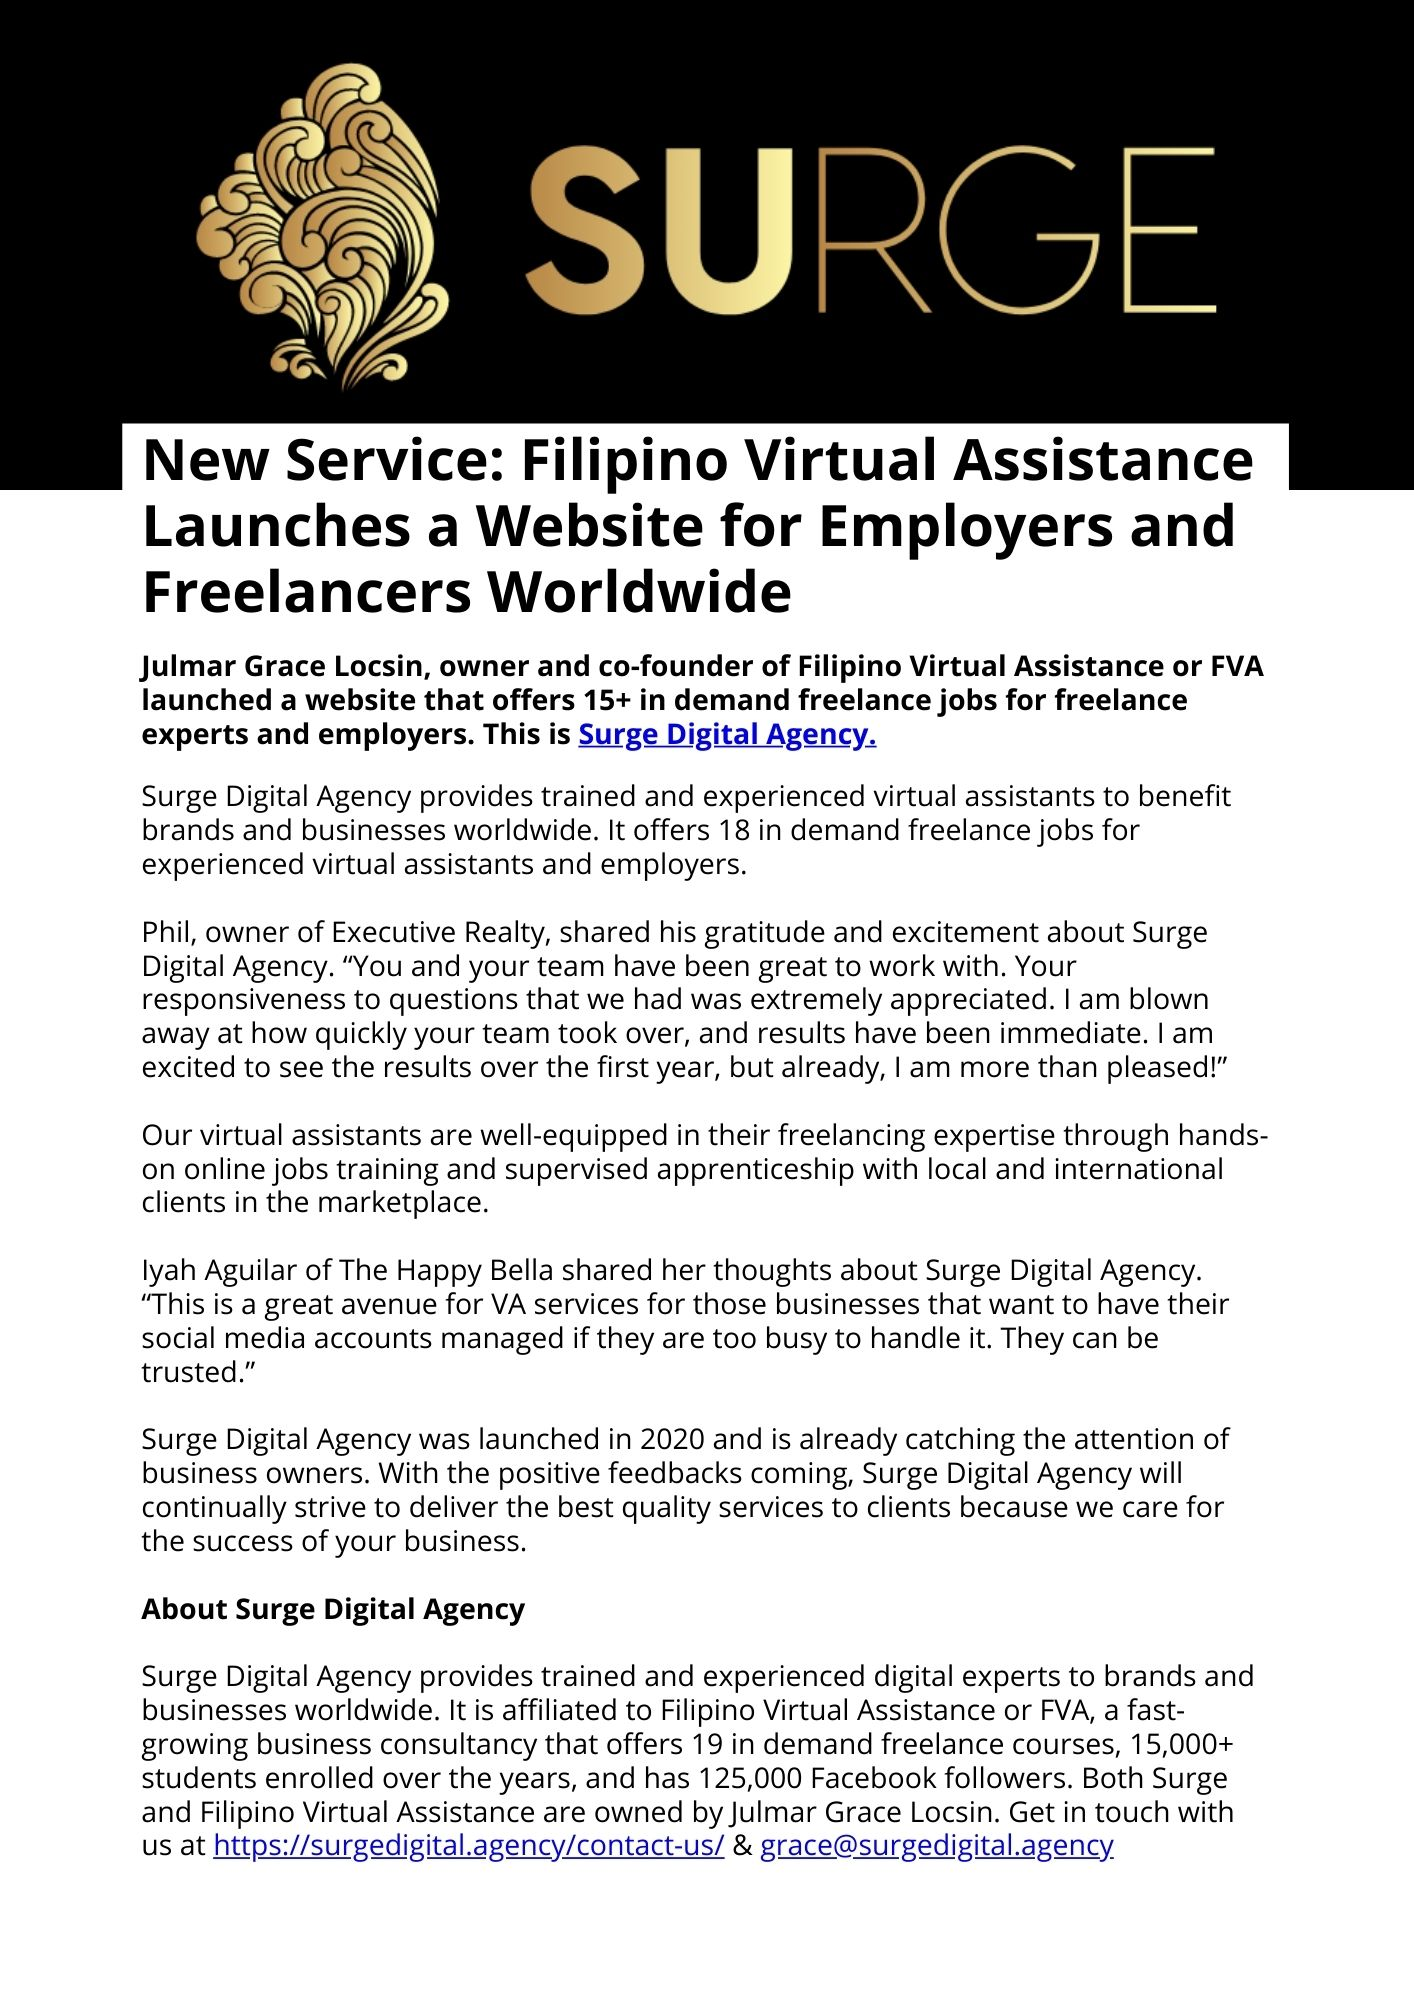 (New Service) Filipino Virtual Assistance Launches a Website for Employers and Freelancers Worldwide